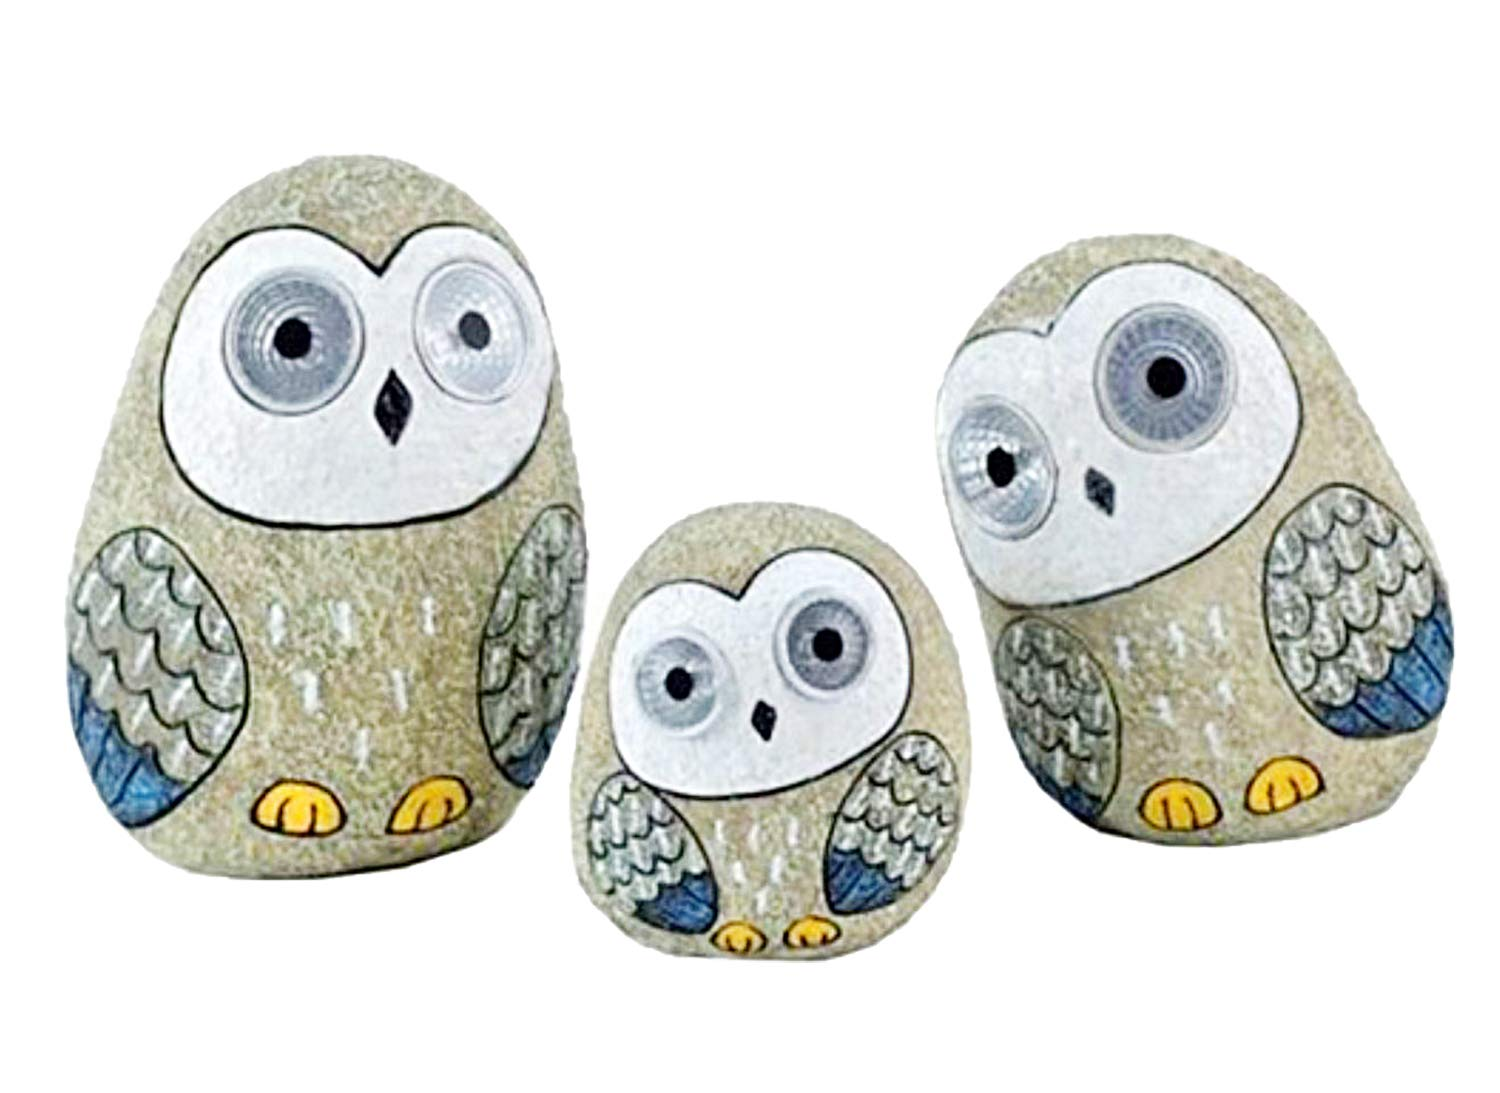 Solar Owls with Light Up Eyes, Set of 3 Figures (Grey)